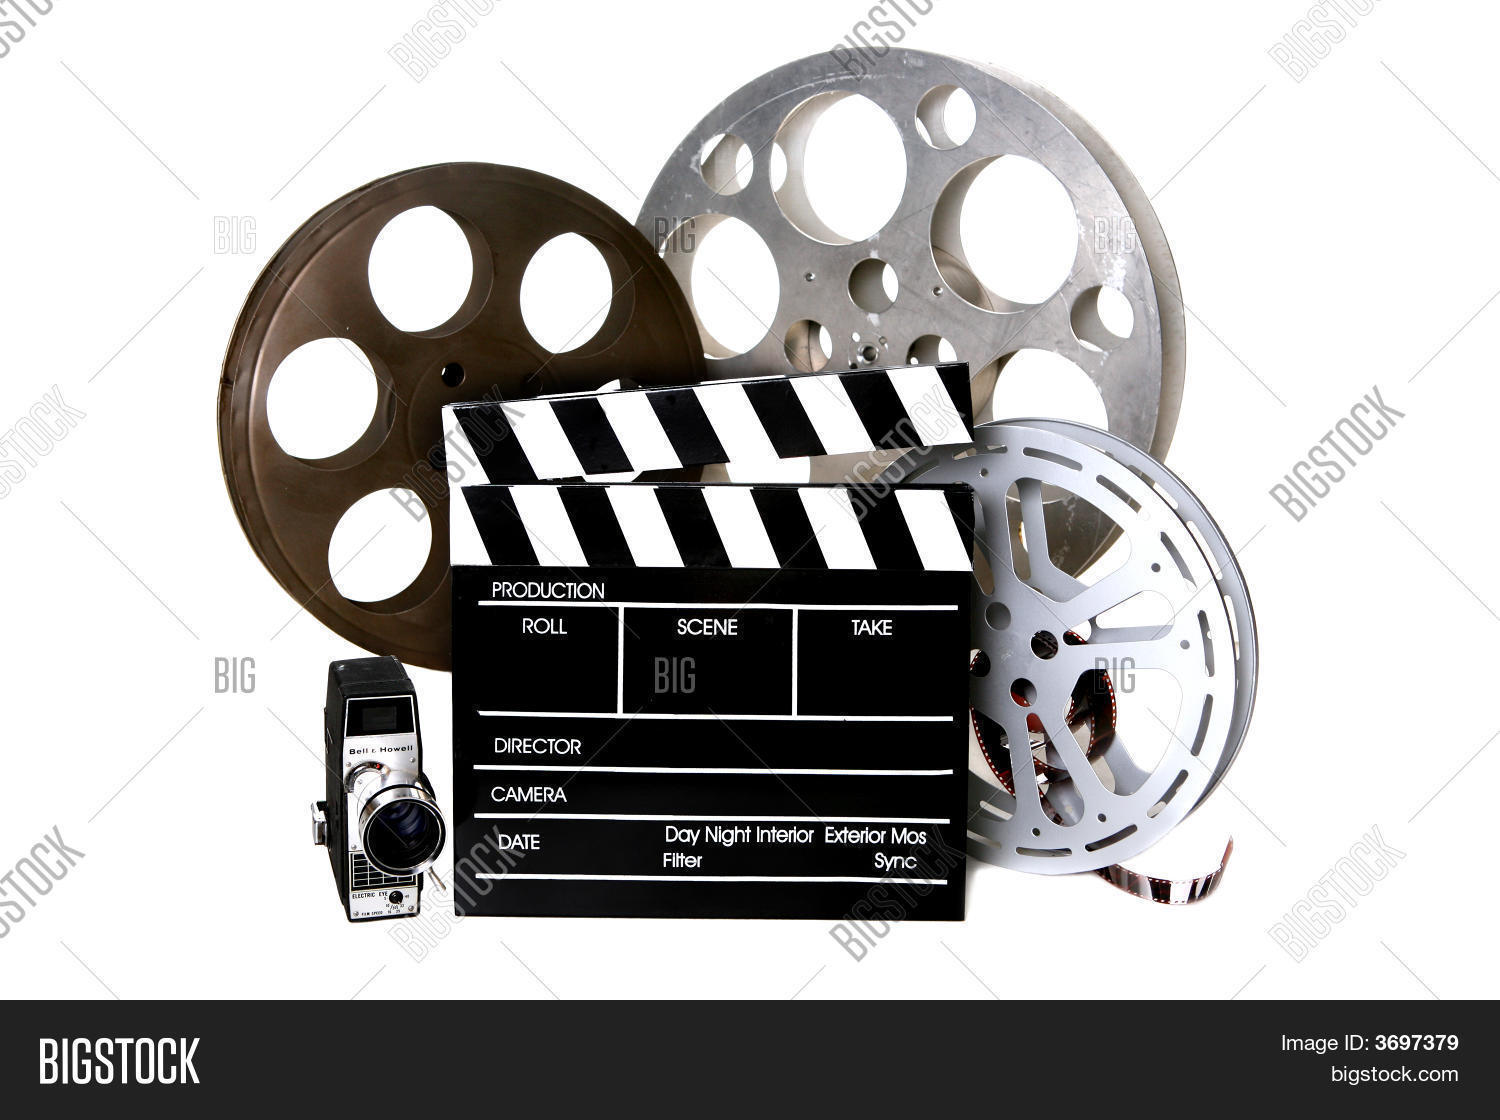 Film reels directors image photo free trial bigstock film reels and directors clapper with vintage camera thecheapjerseys Choice Image